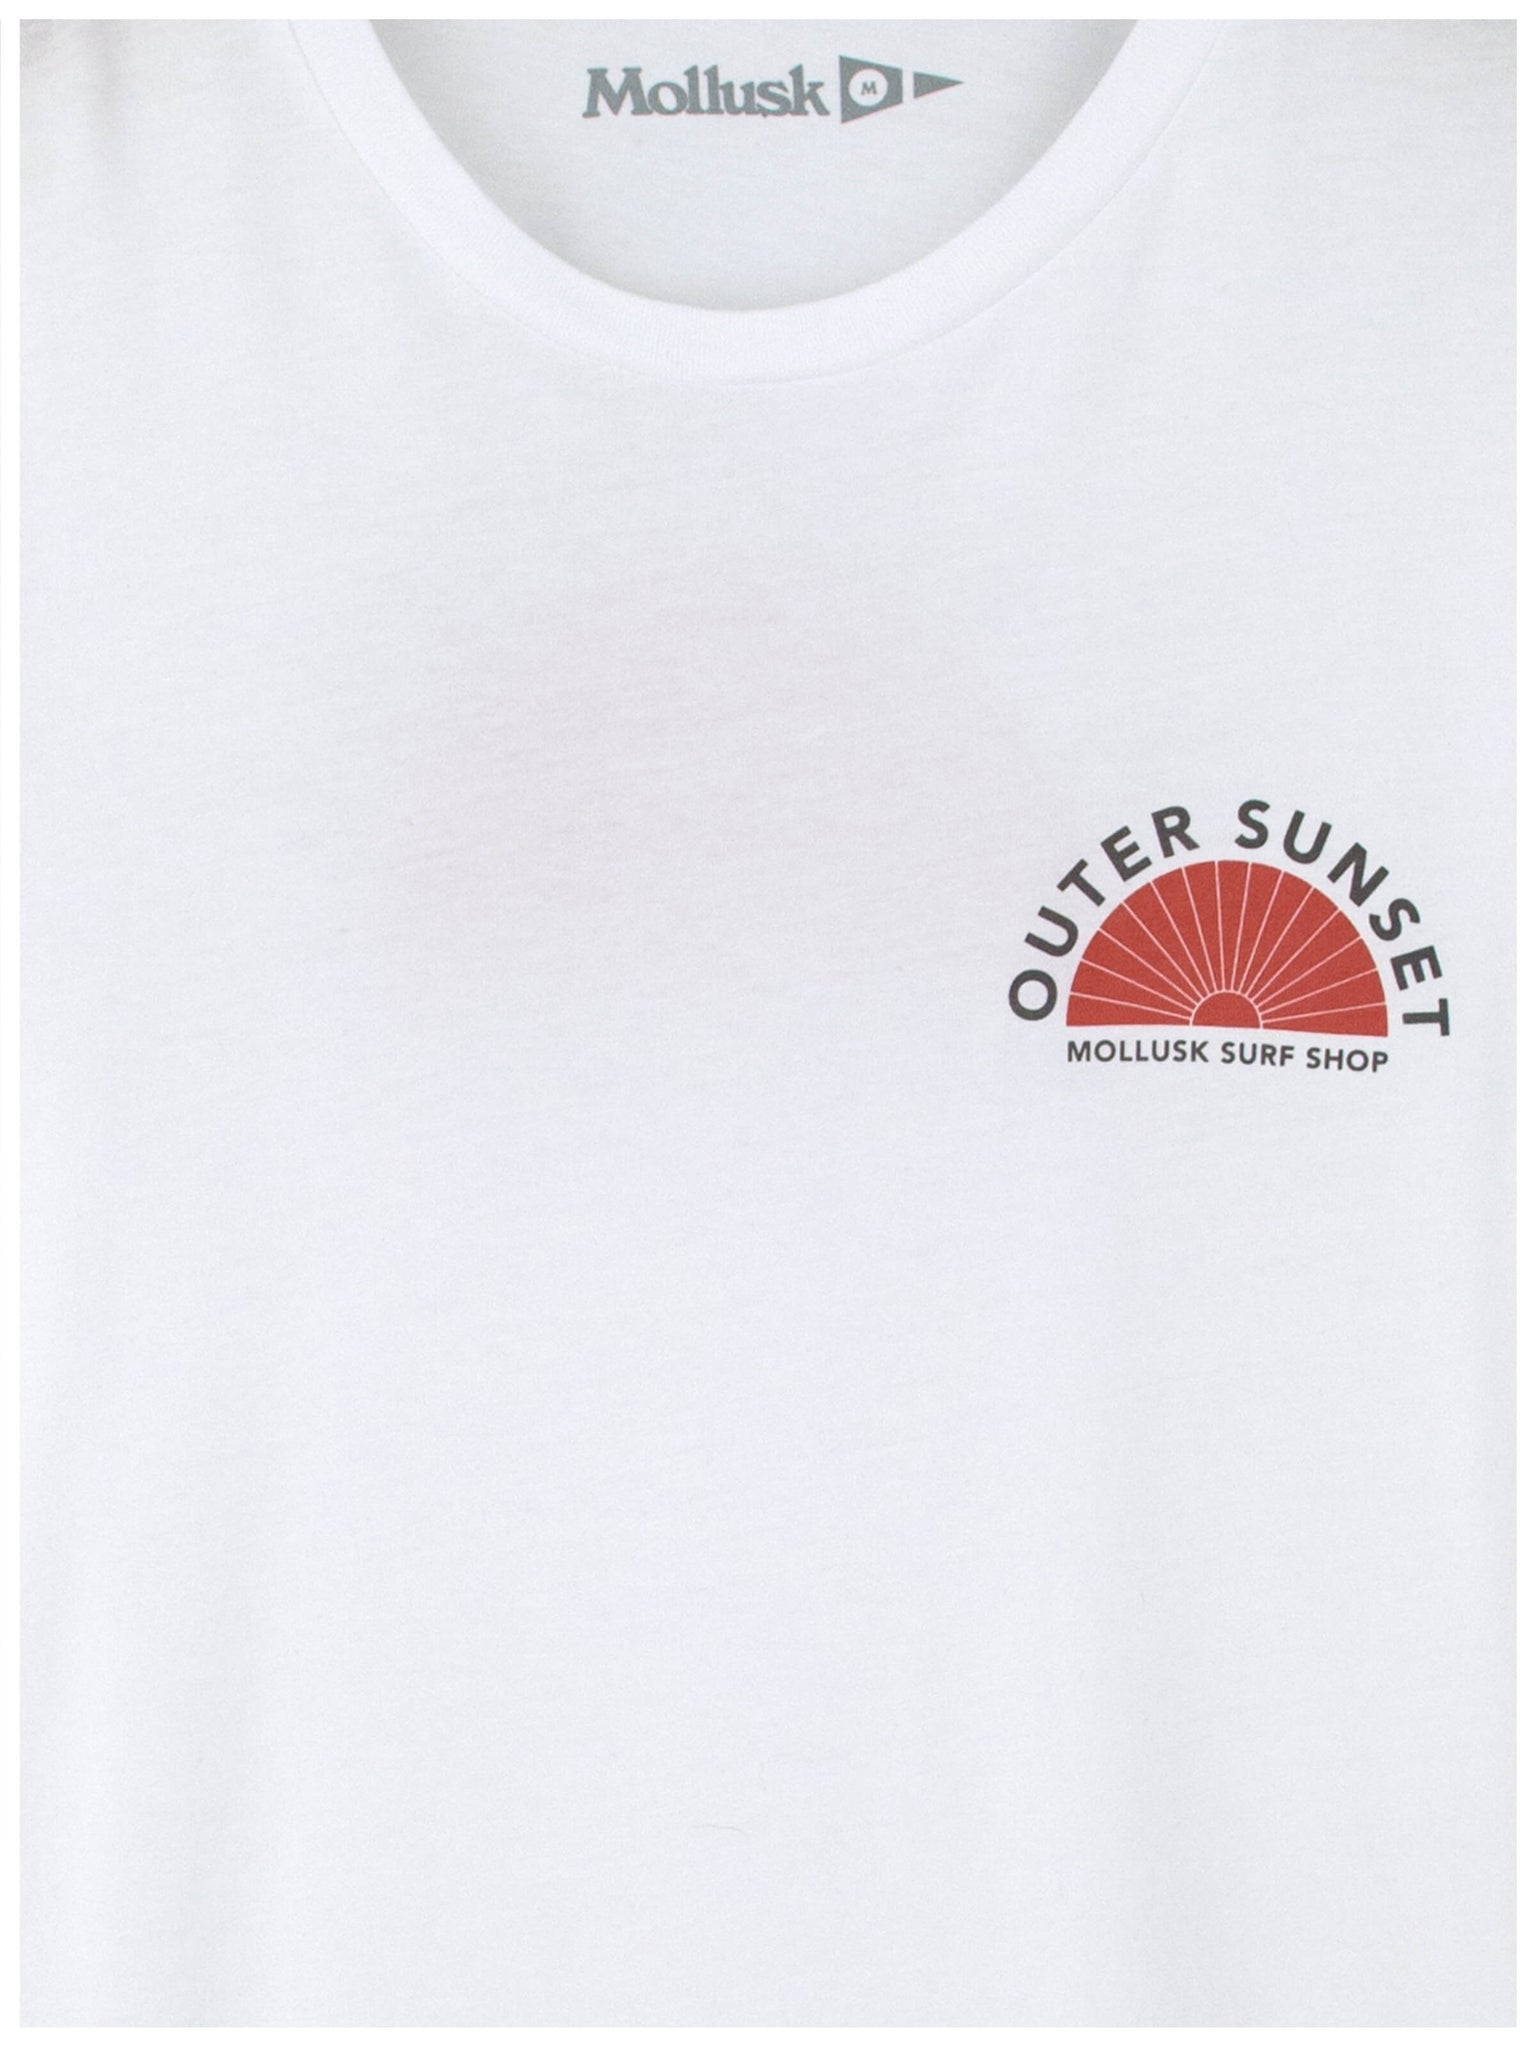 Outer Sunset Tee